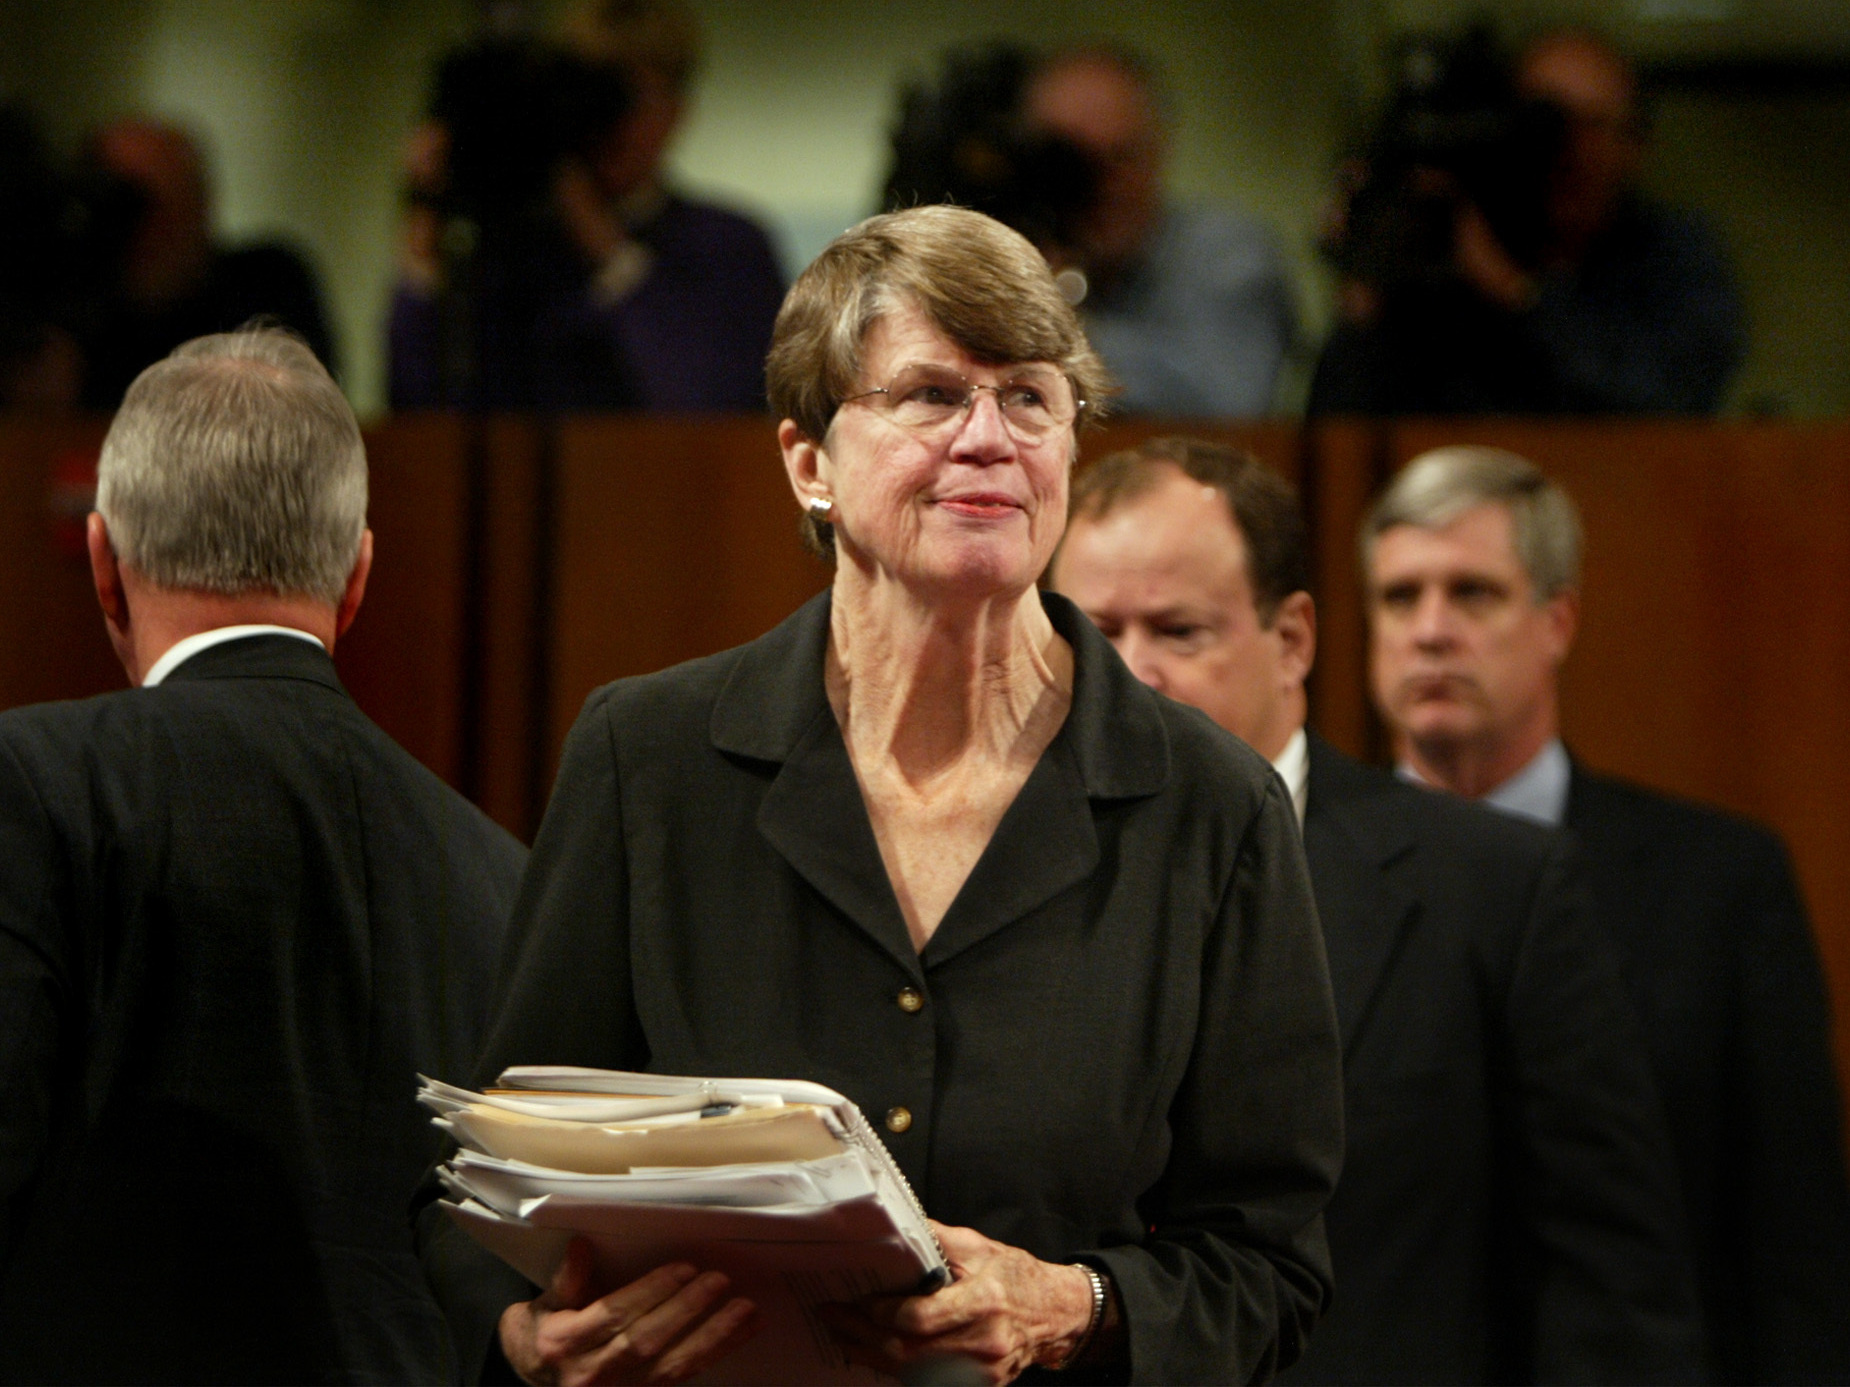 Janet Reno, former United States attorney general, dies at age 78